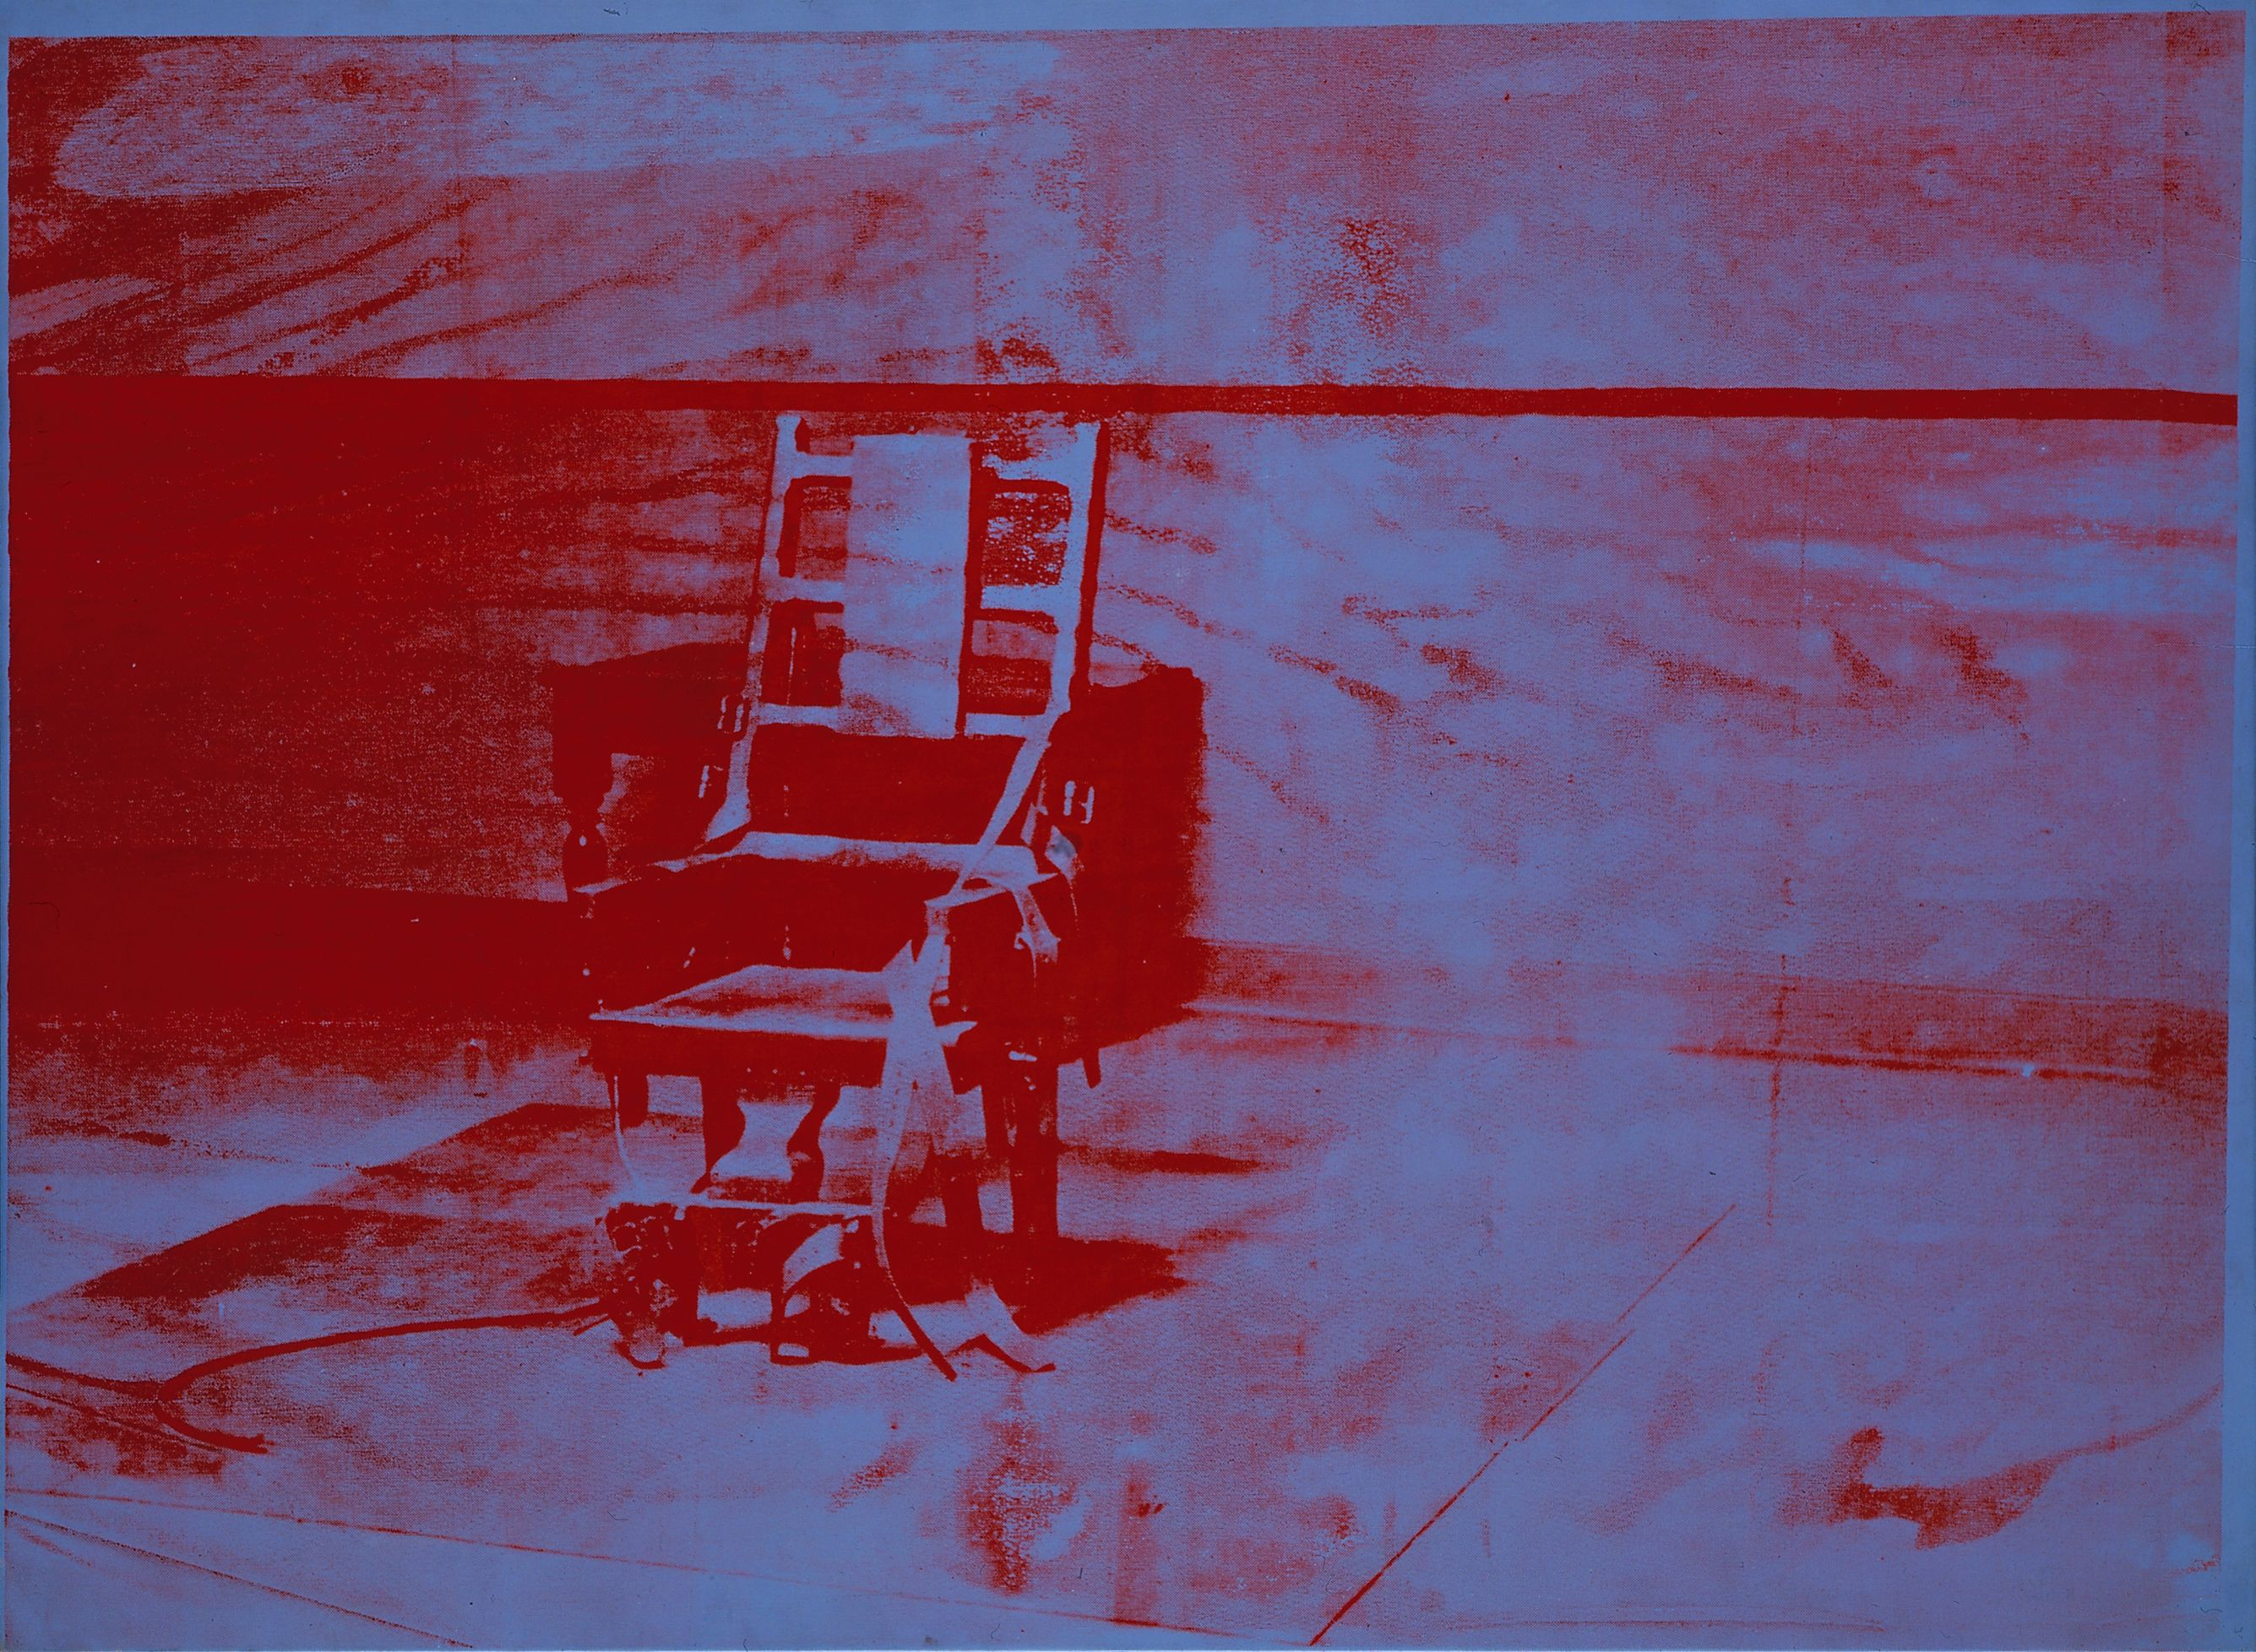 Electric chair andy warhol - Andy Warhol Big Electric Chair 1967 Acrylic And Silkscreen Ink On Linen